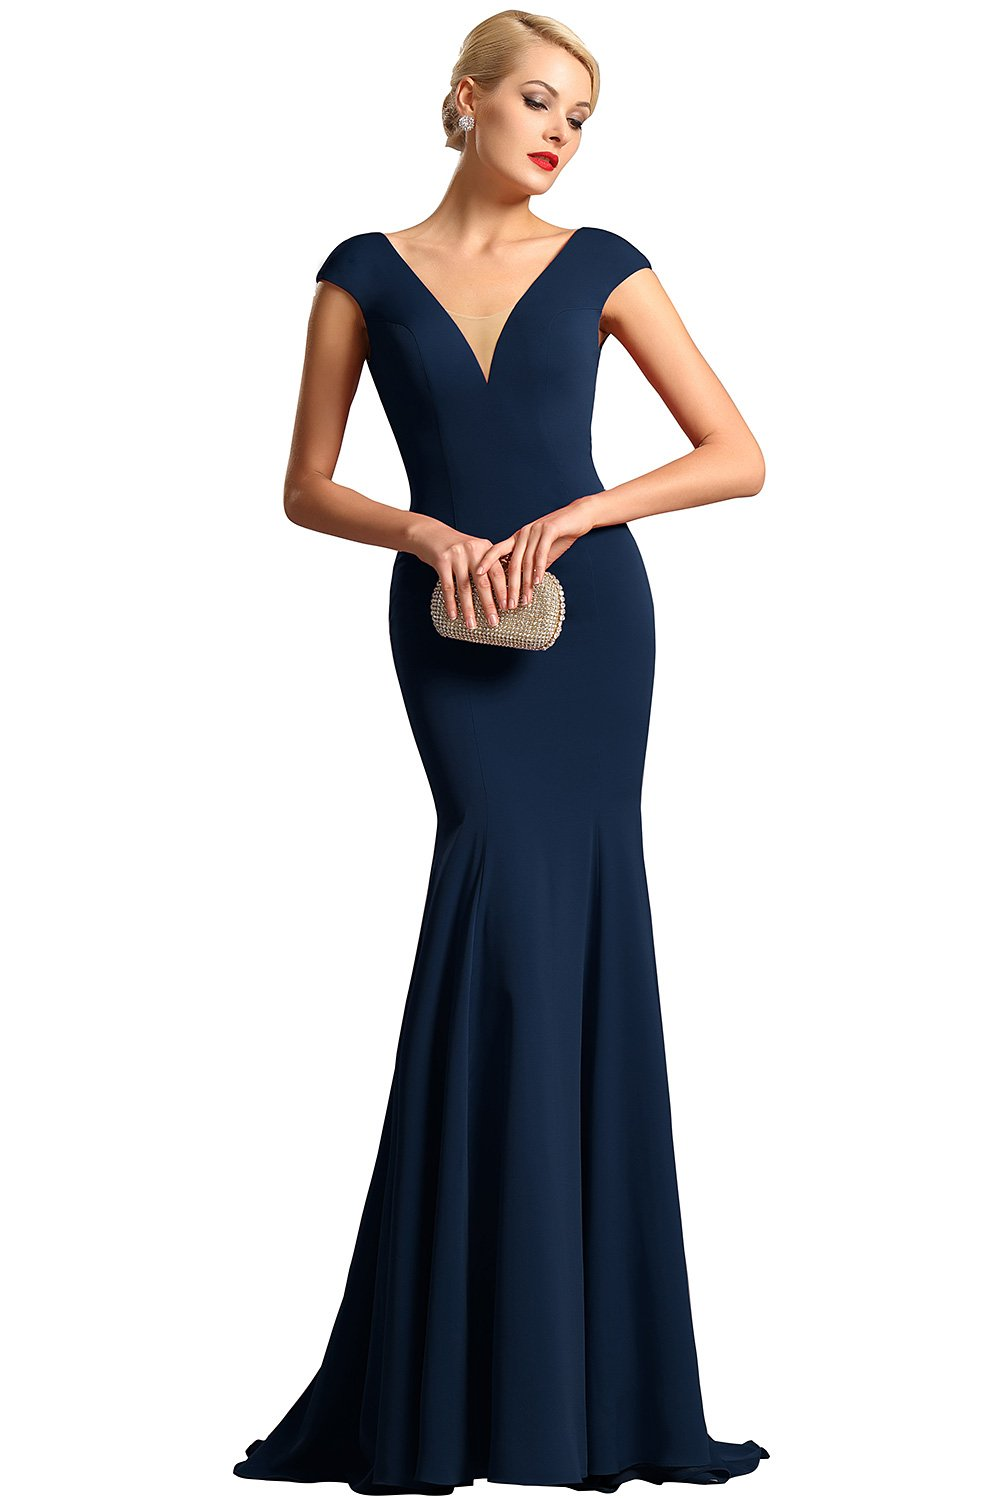 a702ee679b eDressit Capped Sleeves Plunging Neckline Navy Blue Formal Dress (00161258)